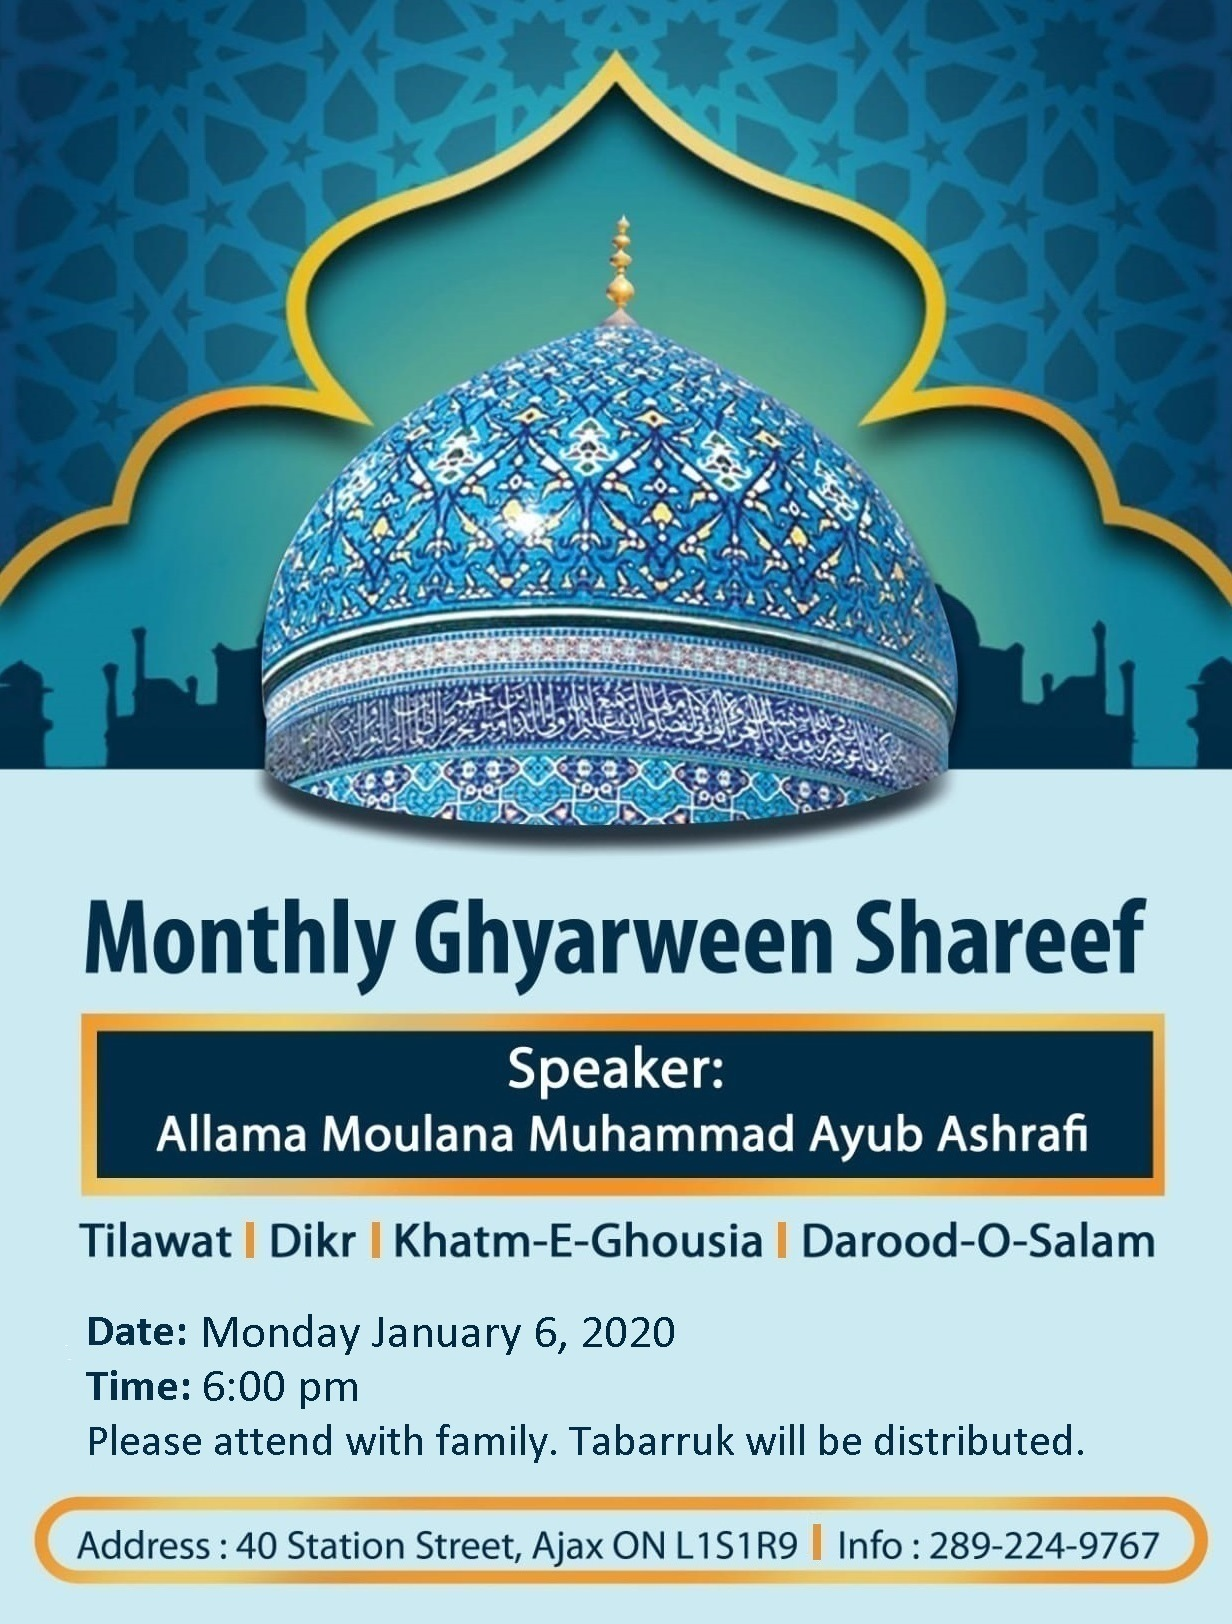 Monthly Ghyarween Shareef – Monday January 6, 2020 at 6:00 pm